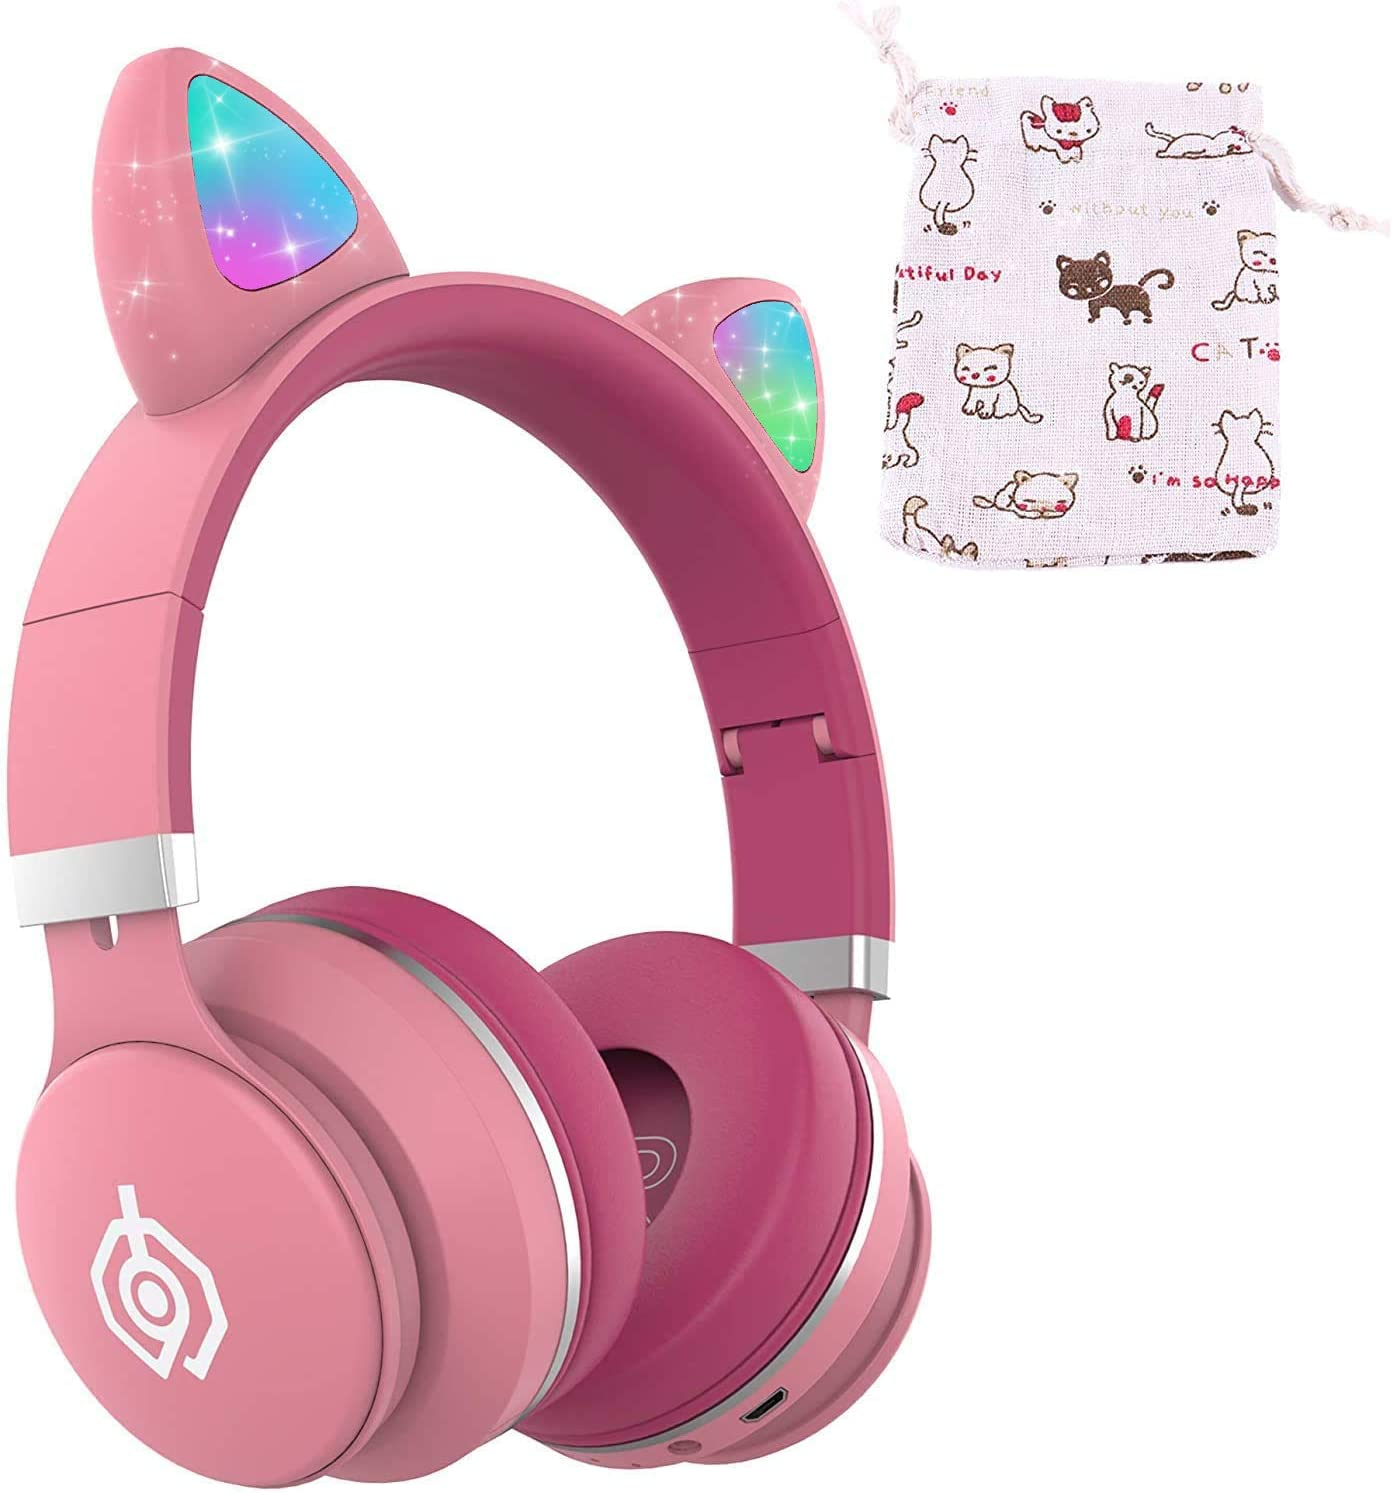 Kids Bluetooth Headphones, ONXE Cat Ear LED Light Up Wireless Foldable Headphones Over Ear with Microphone and Volume Control for iPhone/iPad/Smartphones/Laptop/PC/TV (Pink)